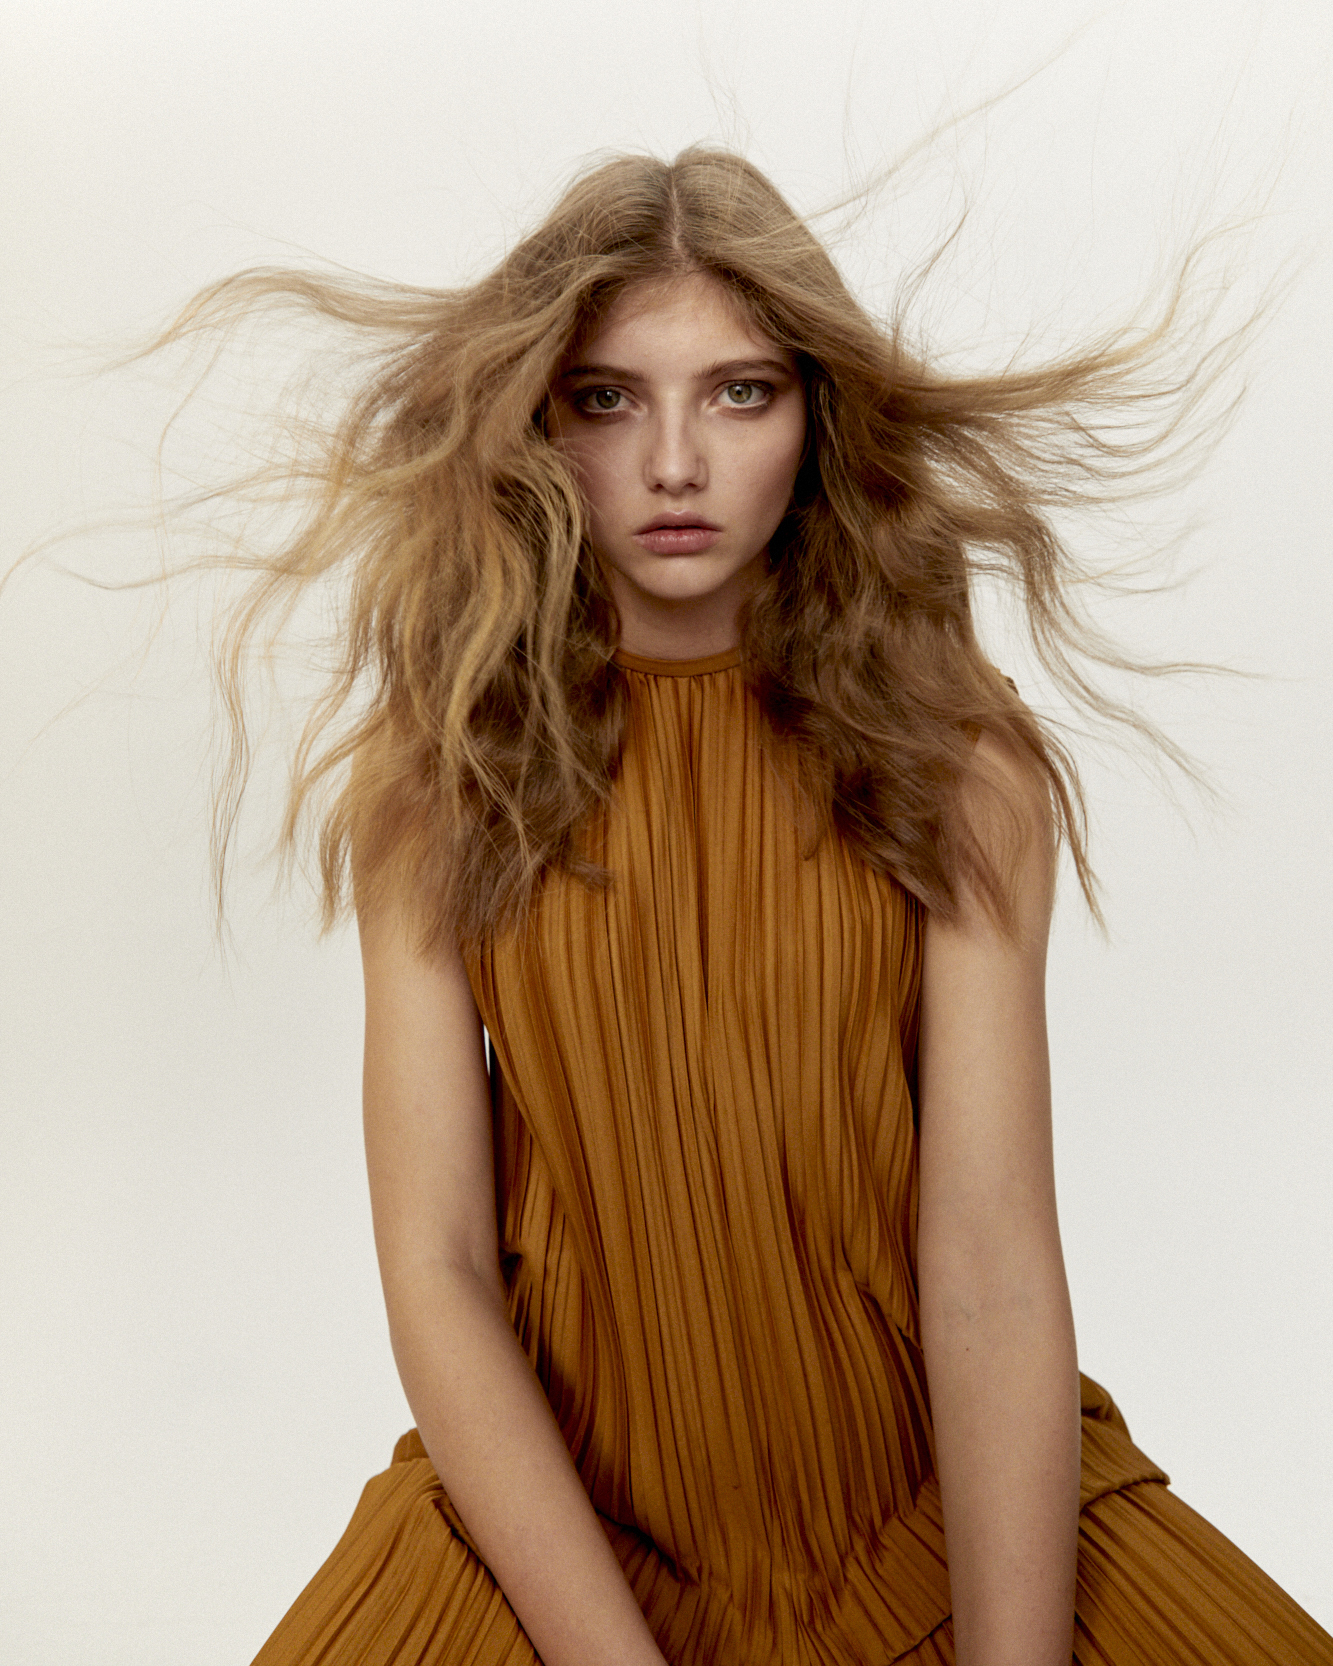 Girl with a long hair editorial hairstyle and soft waves blown off the face. Strawberry blonde hair colour